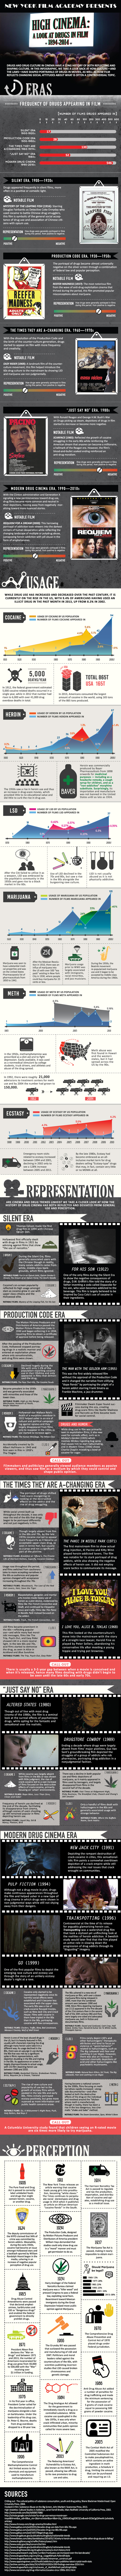 High Cinema: A Look at Drugs in Film 1894-2014